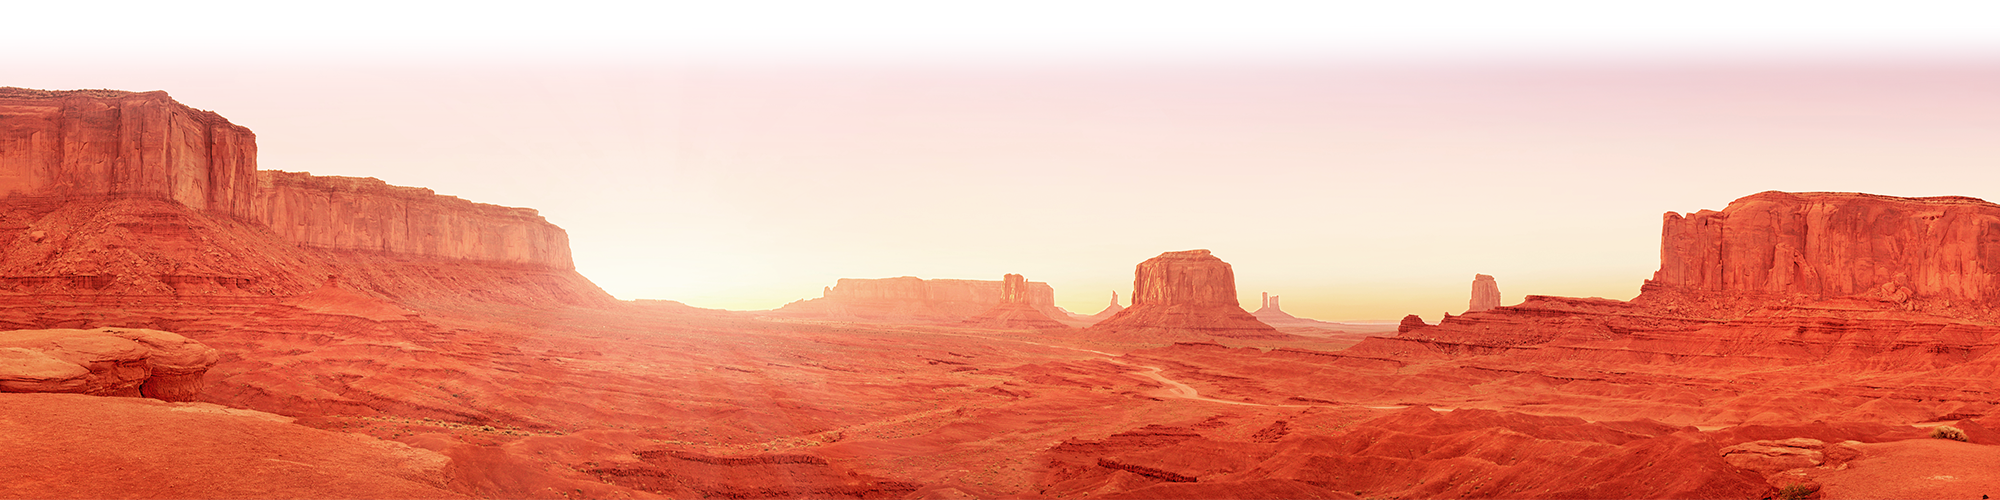 Background image of monument valley